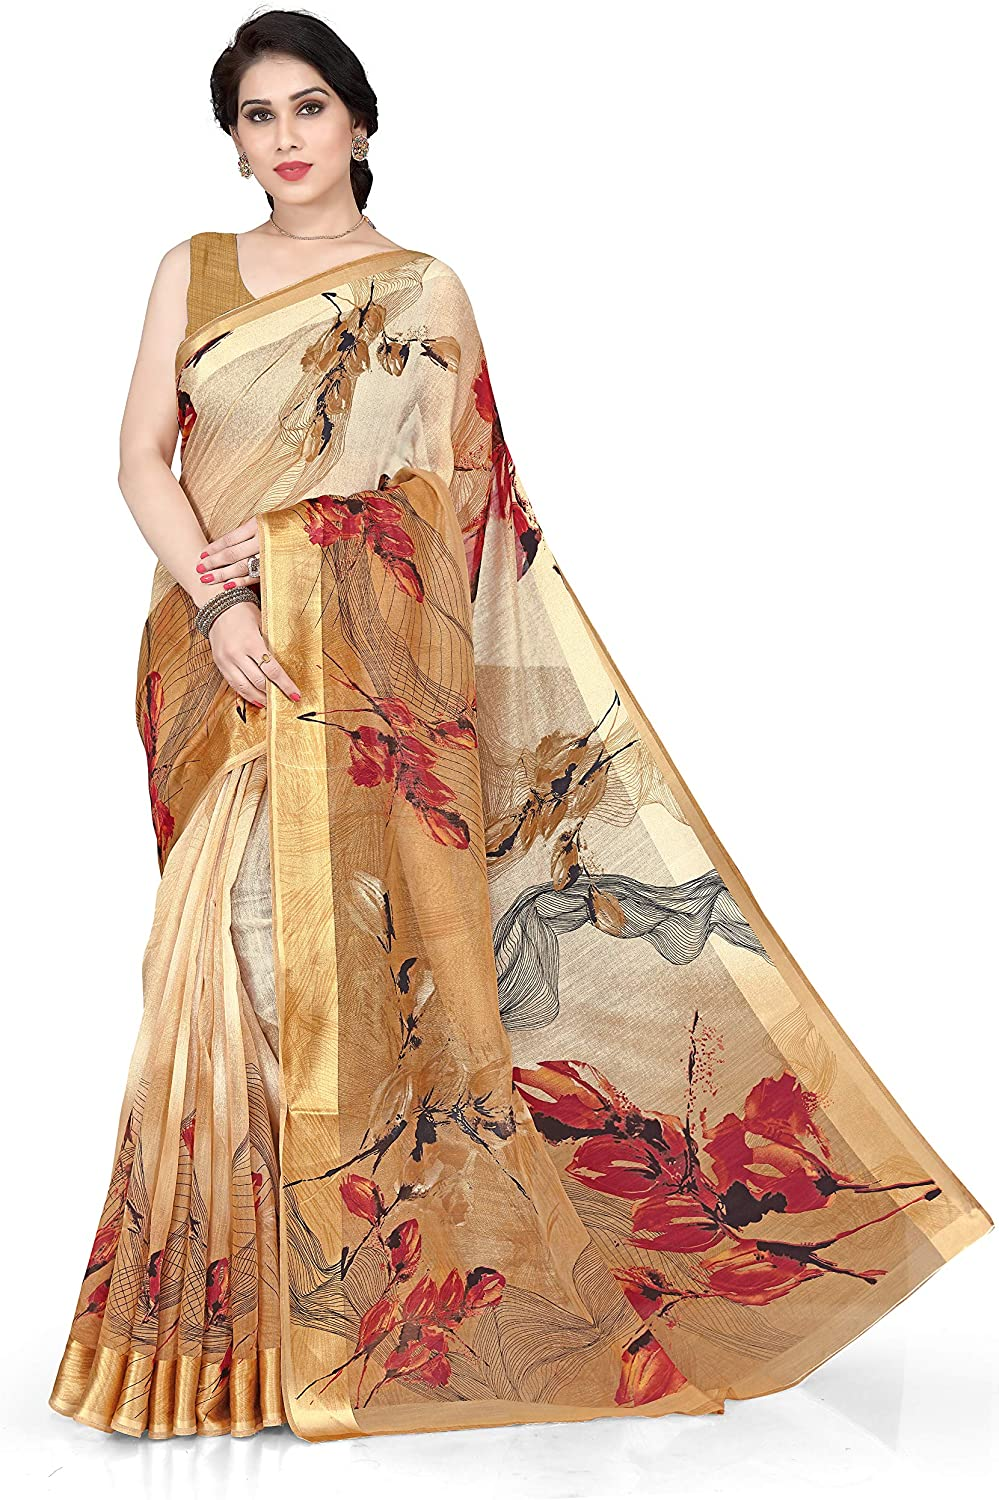 SOURBH New Fancy Cotton Abstract Print Saree For Women With Un-Stitched Blouse Piece